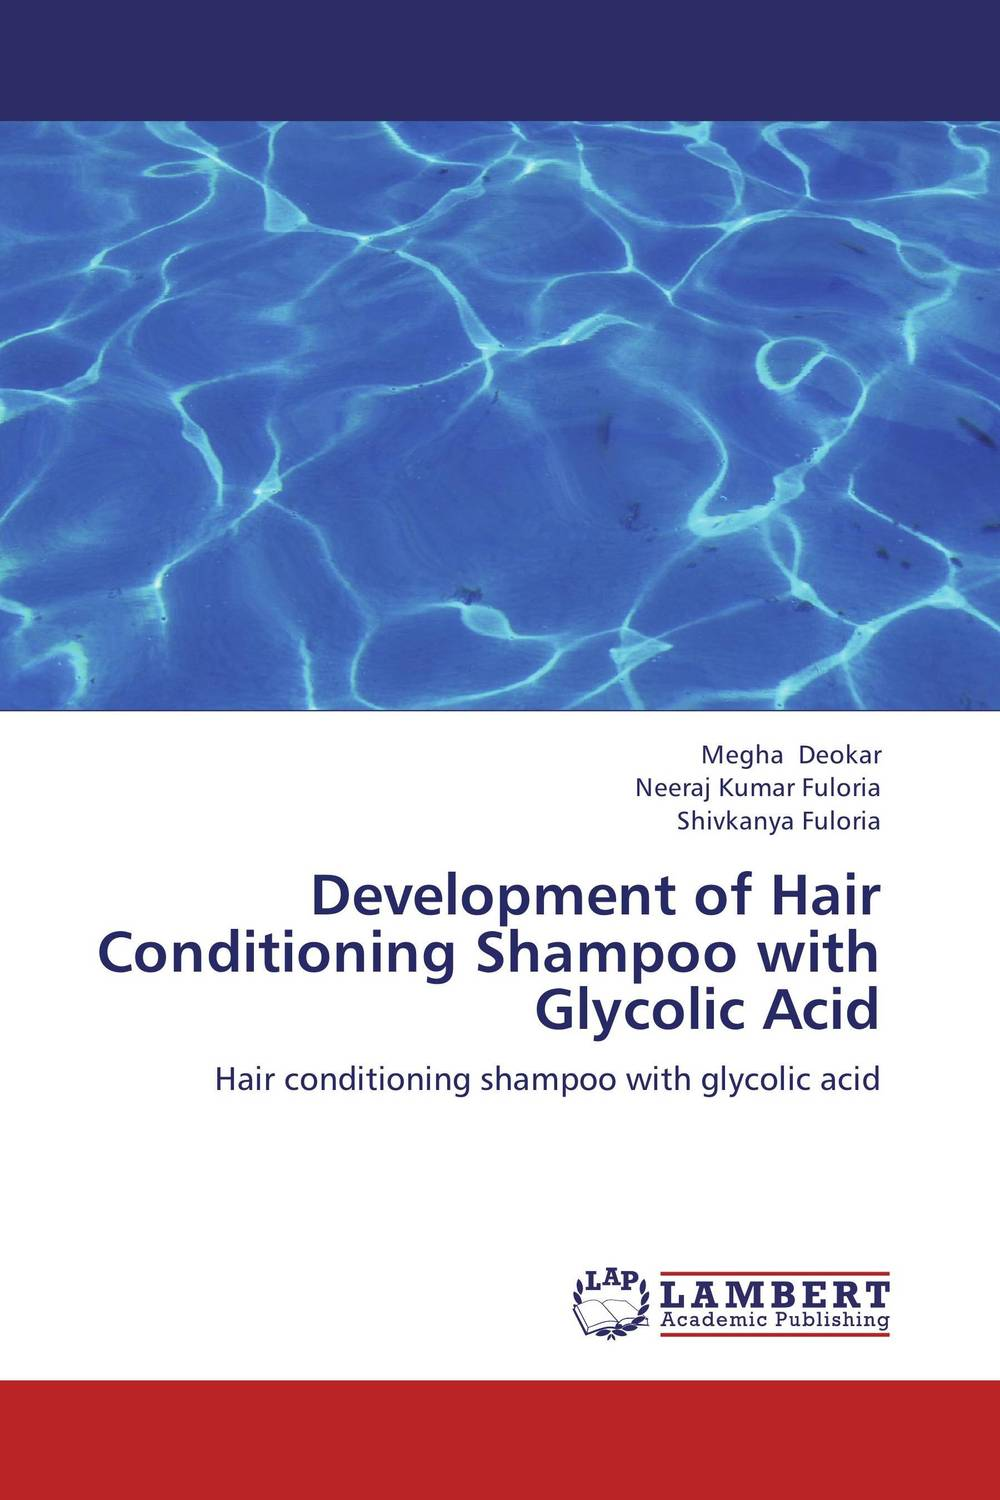 Development of Hair Conditioning Shampoo with Glycolic Acid